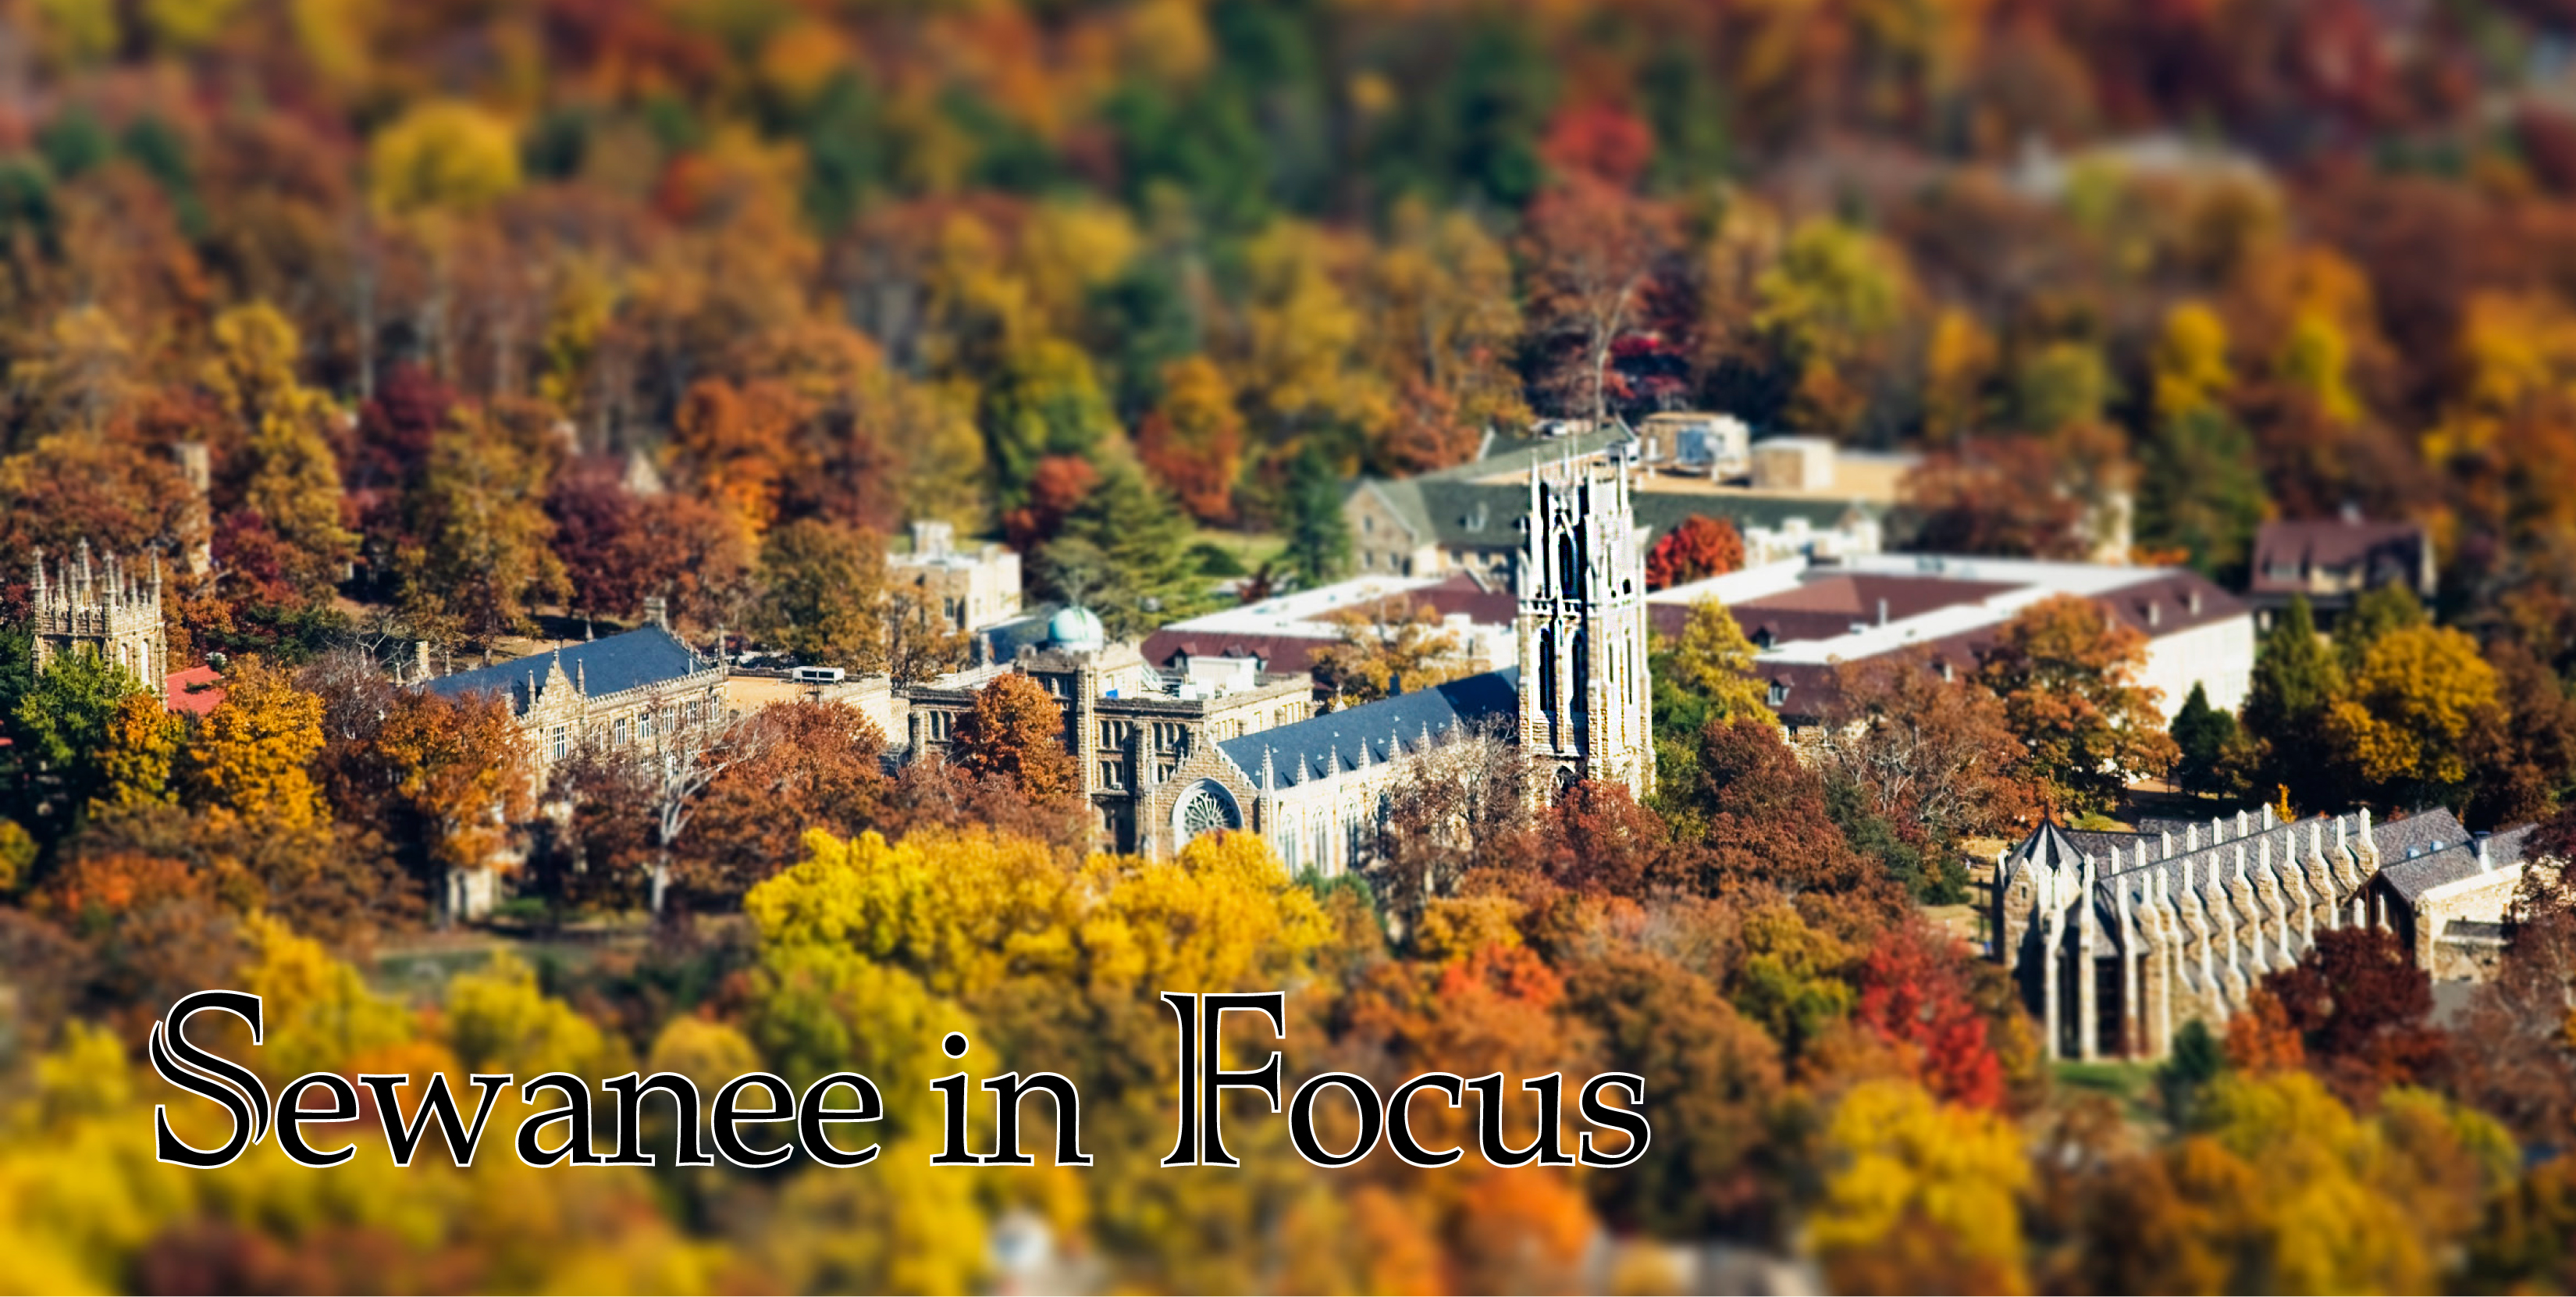 Sewanee in Focus